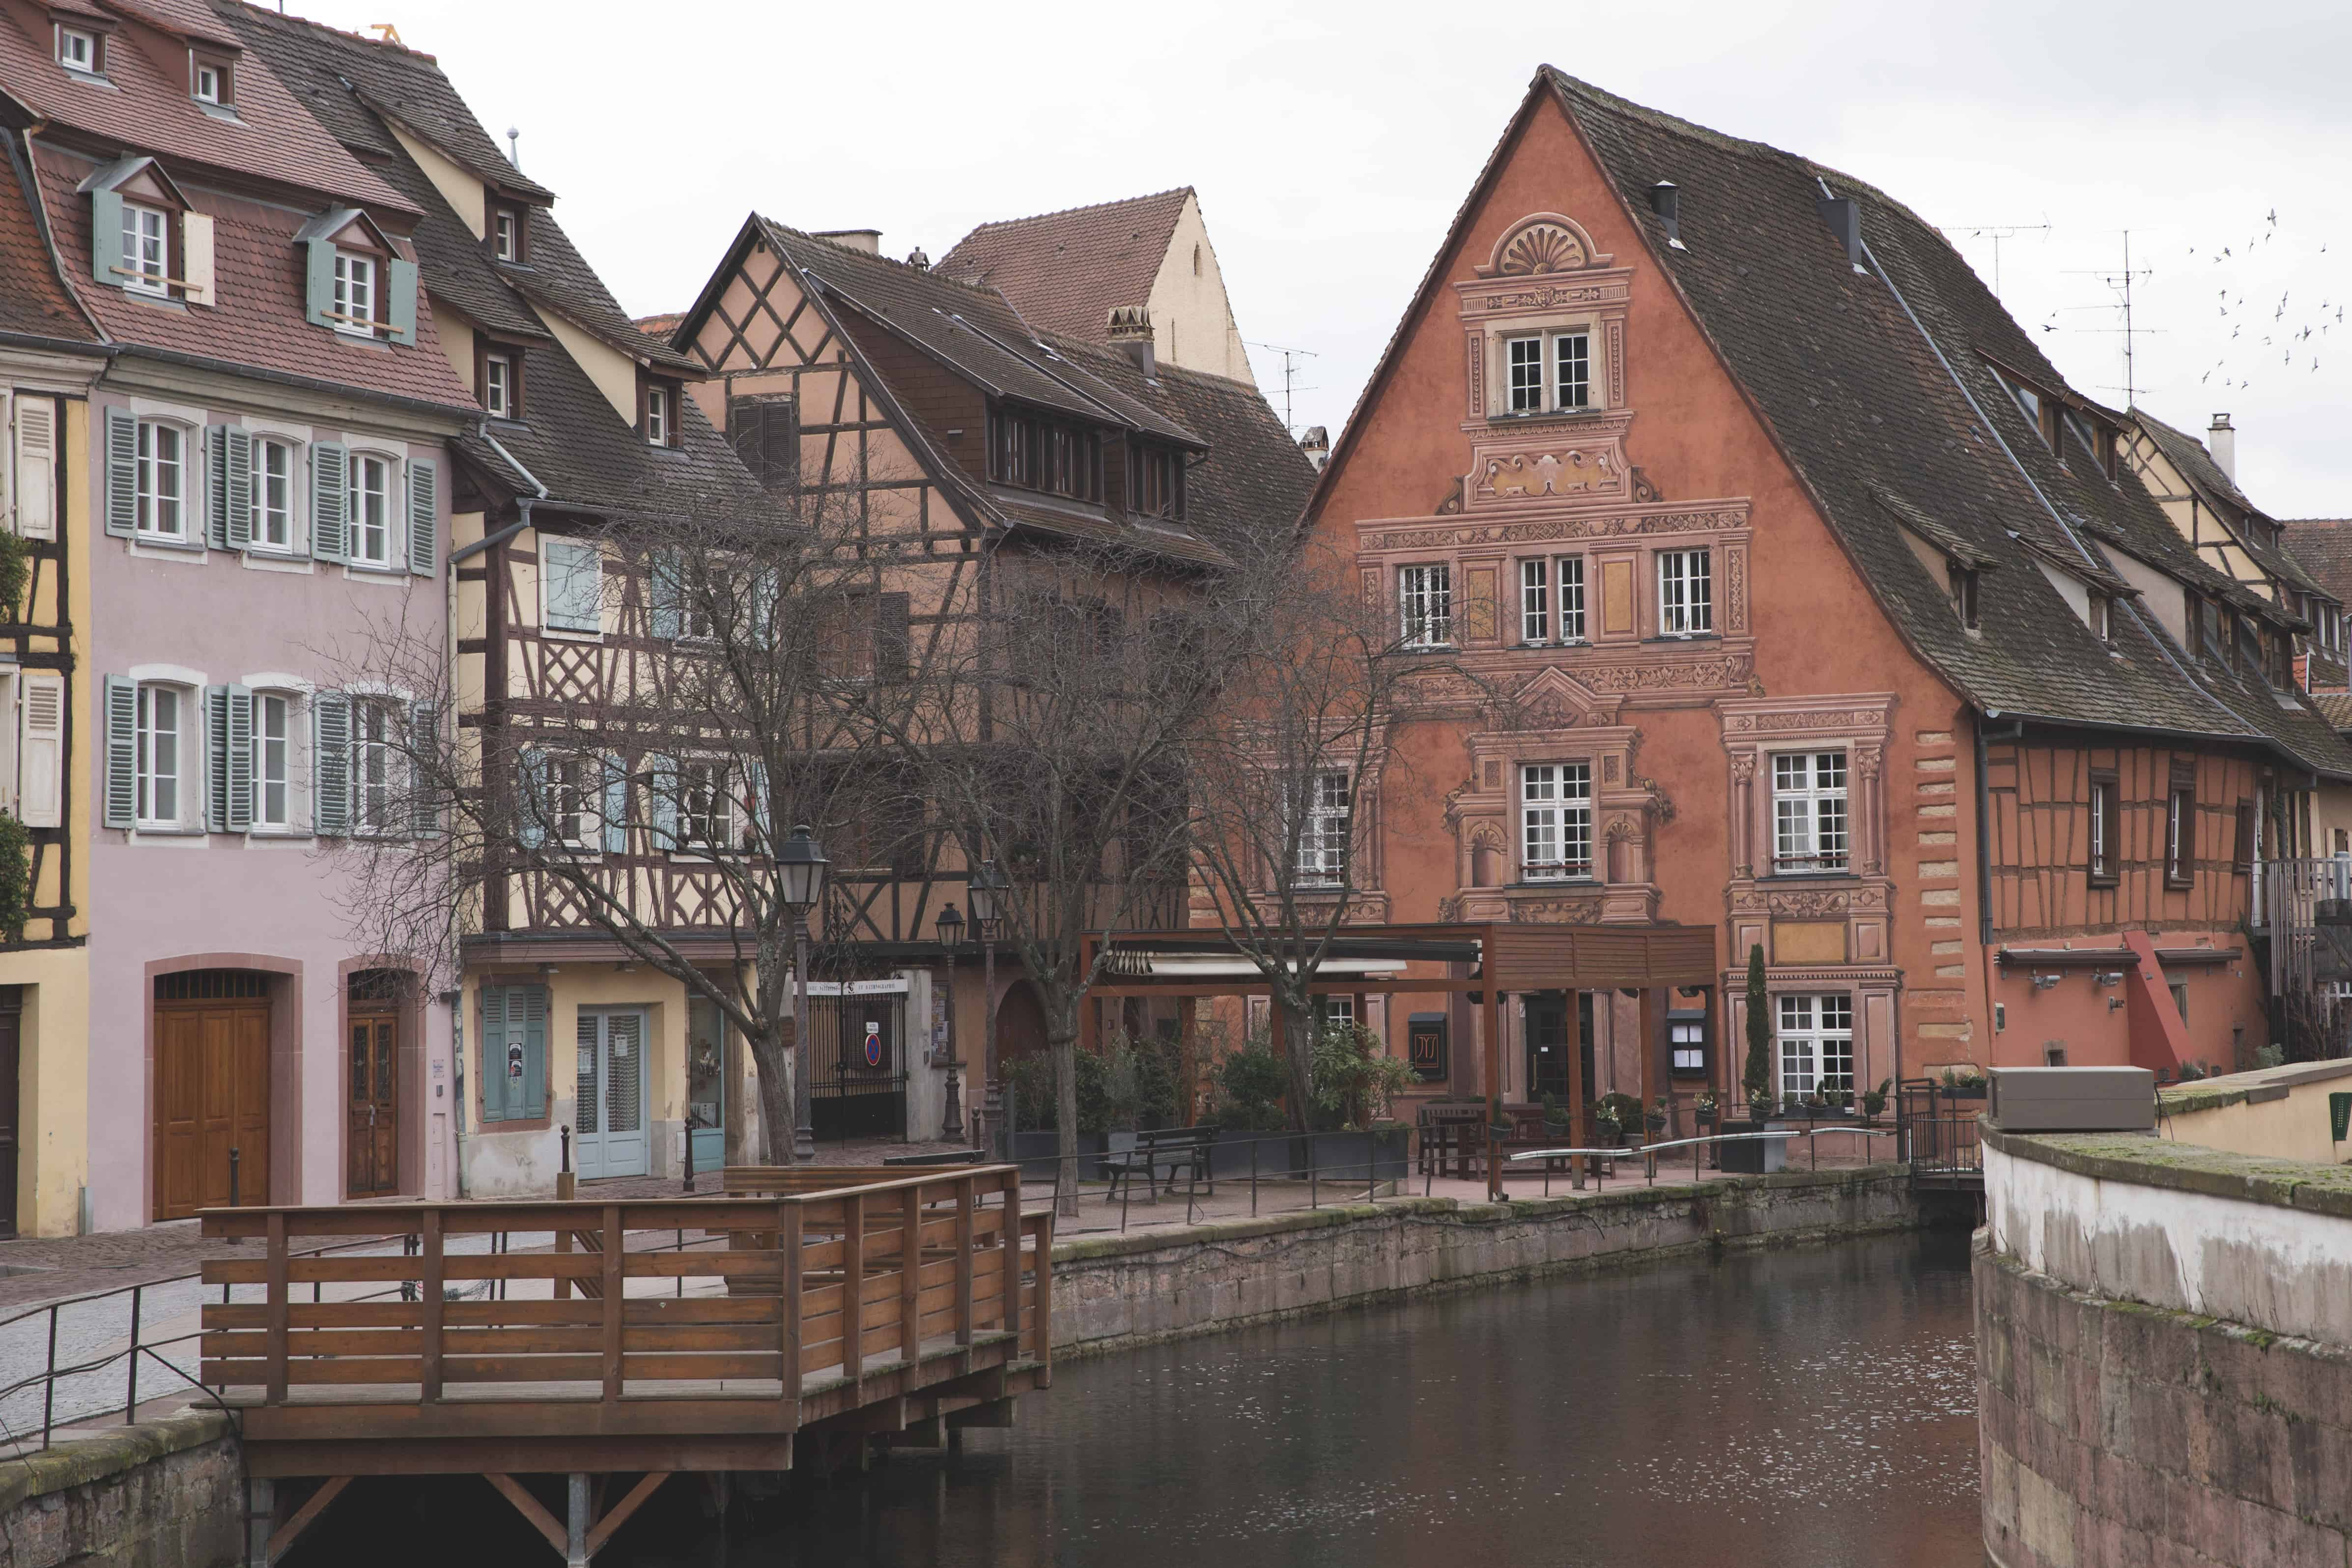 The canals of Colmar along the La Lauch are beautiful next to the colorful, half-timbered buildings and houses